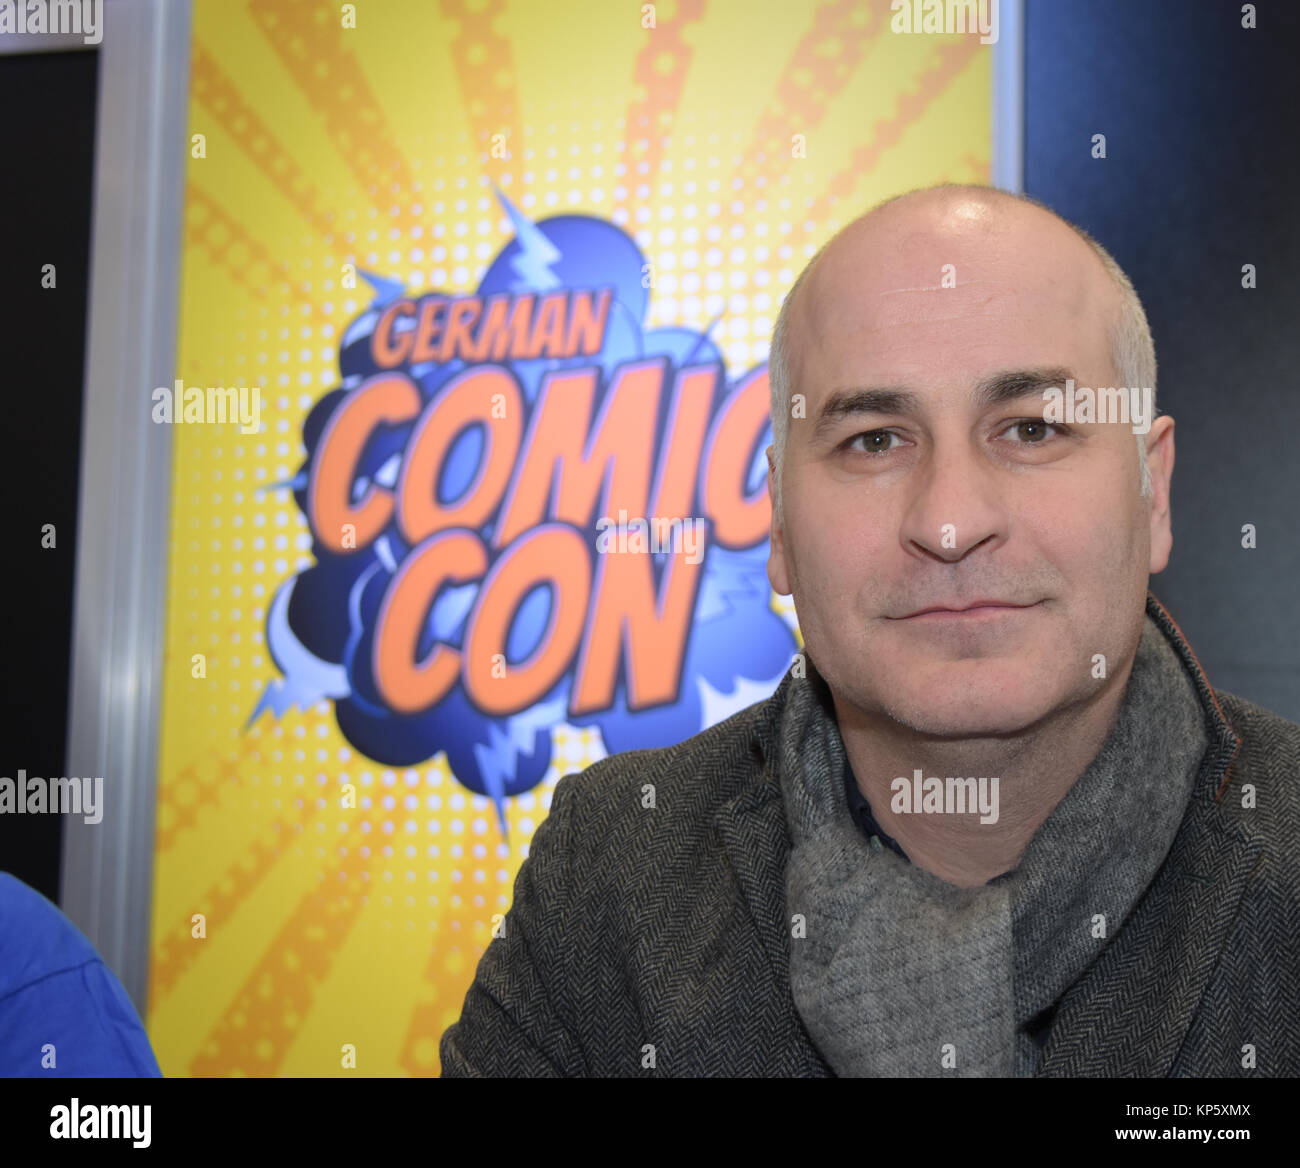 Dortmund, Germany - December 9th 2017: US Actor and Stuntman Daniel Naprous (* 1977, Star Wars: Rogue One, Harry - Stock Image